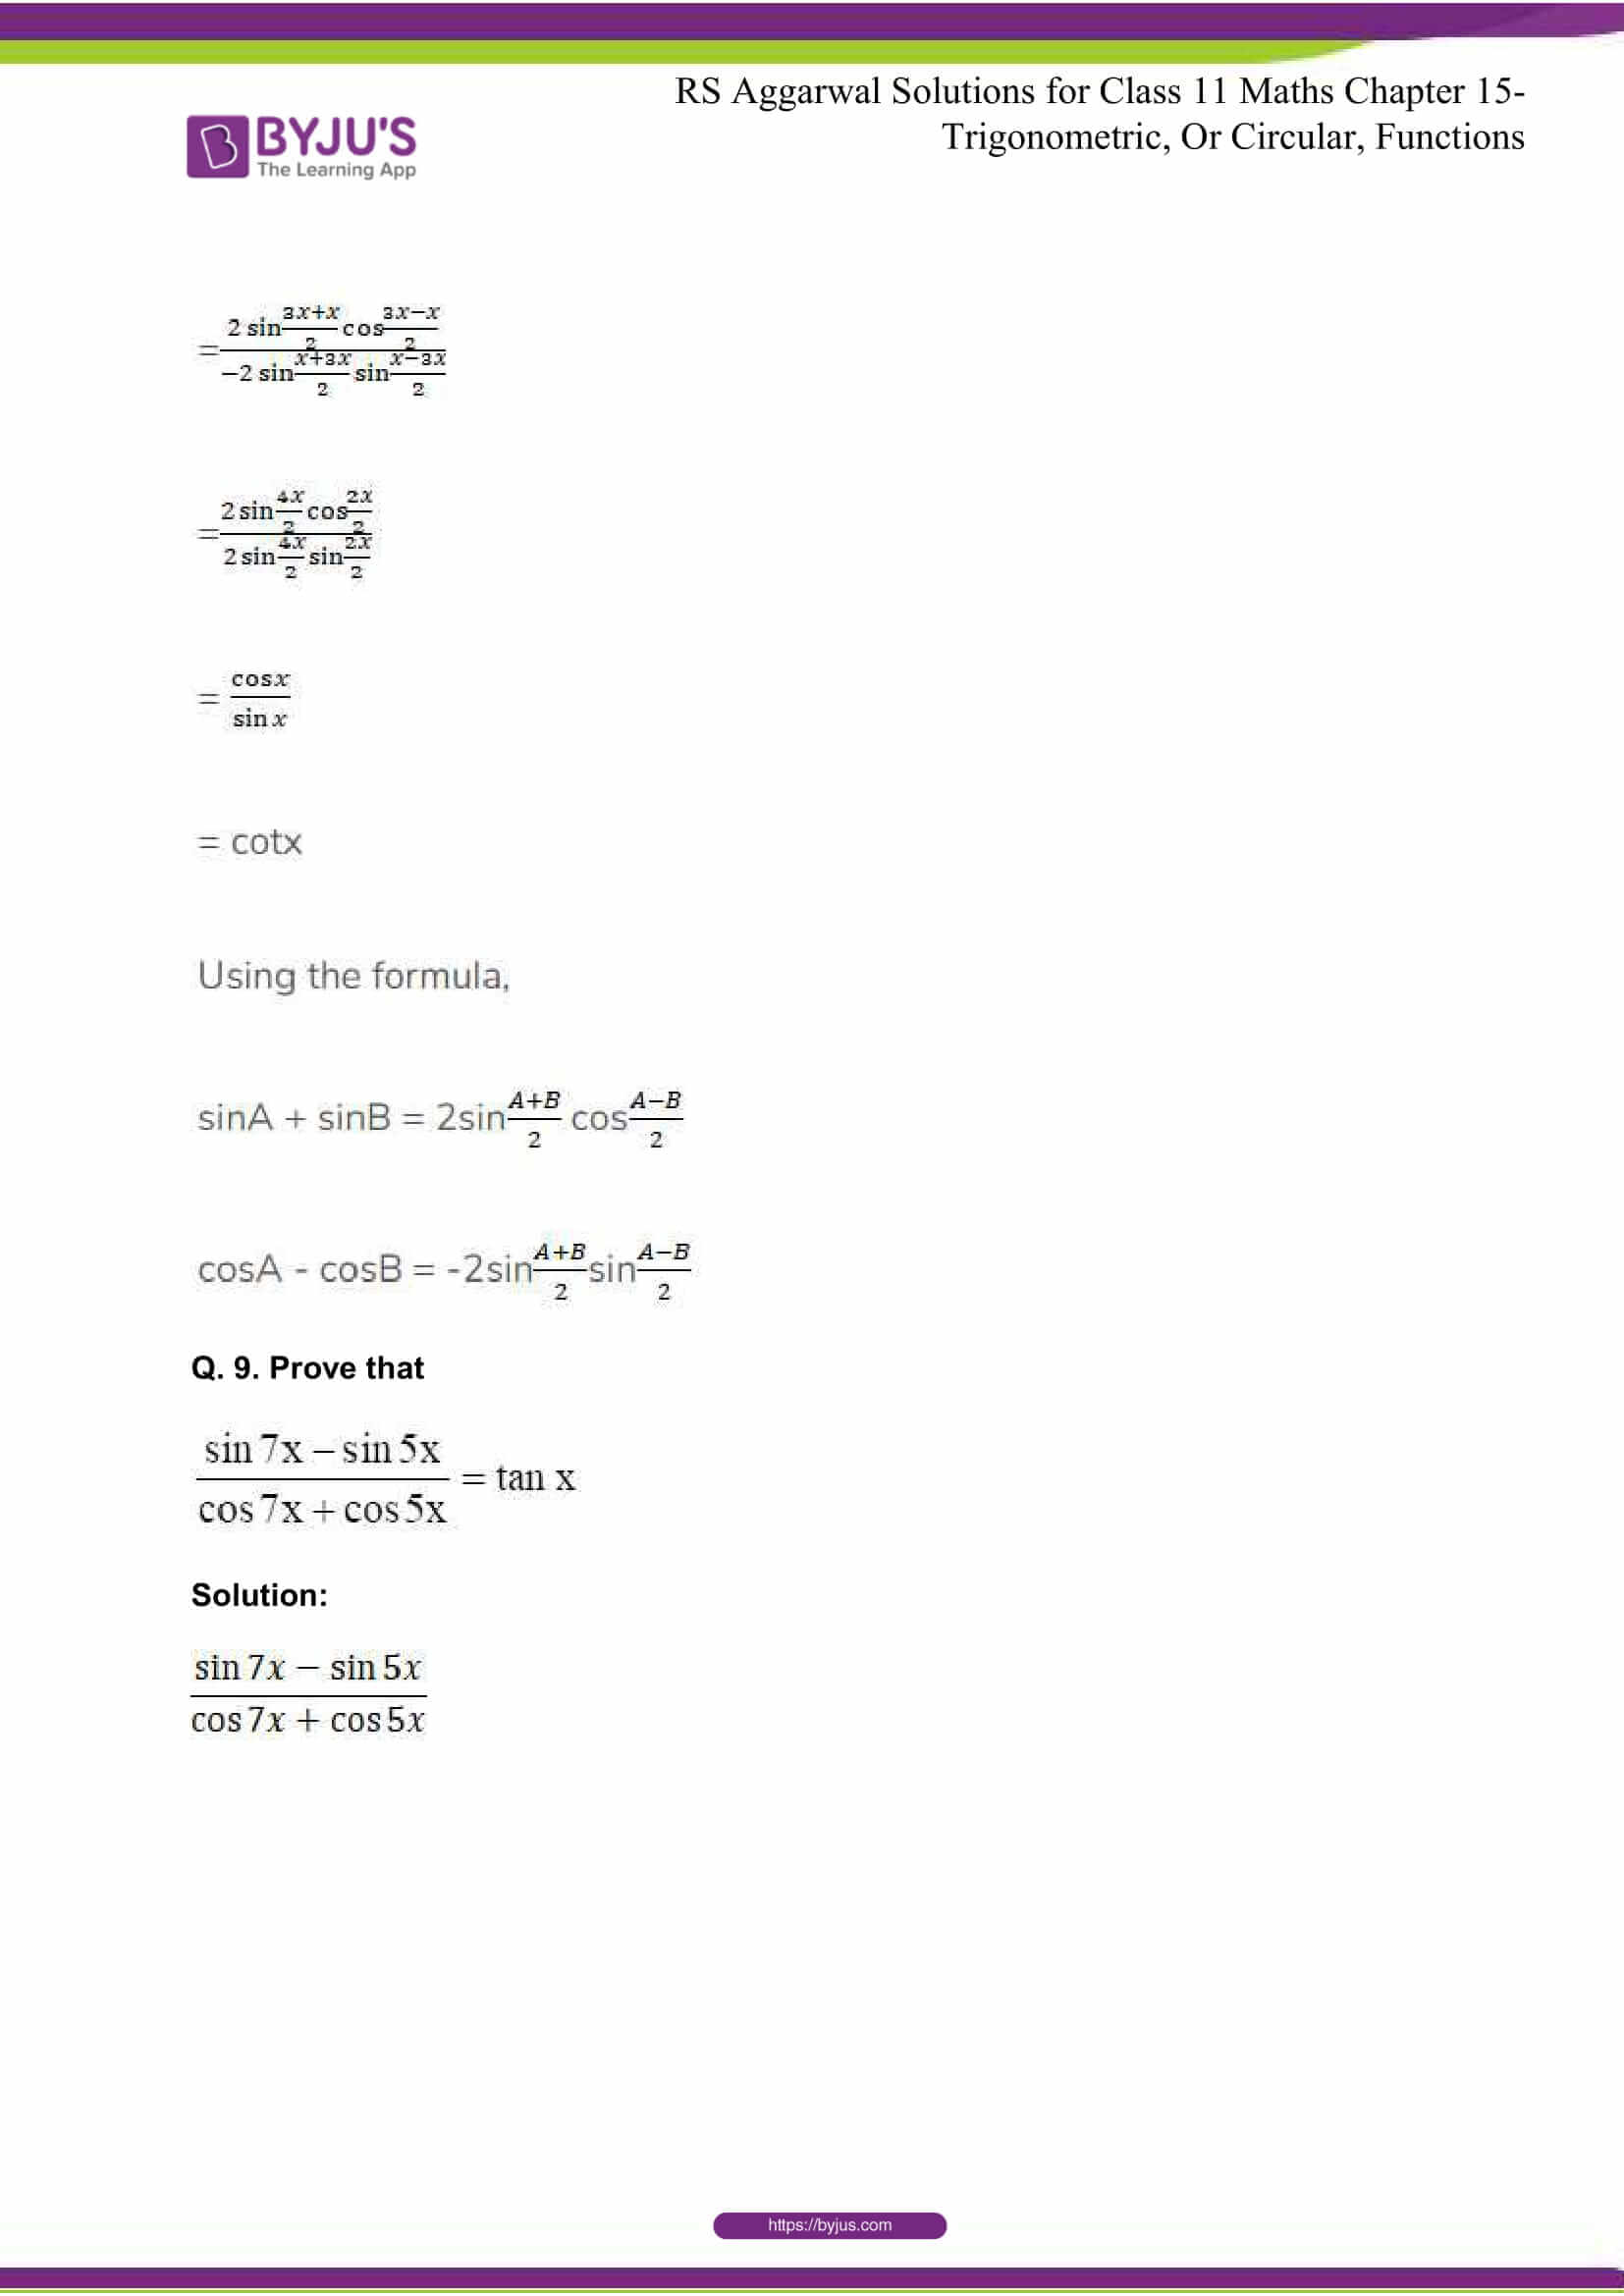 rsaggarwal solutions class 11 maths chapter 15 056